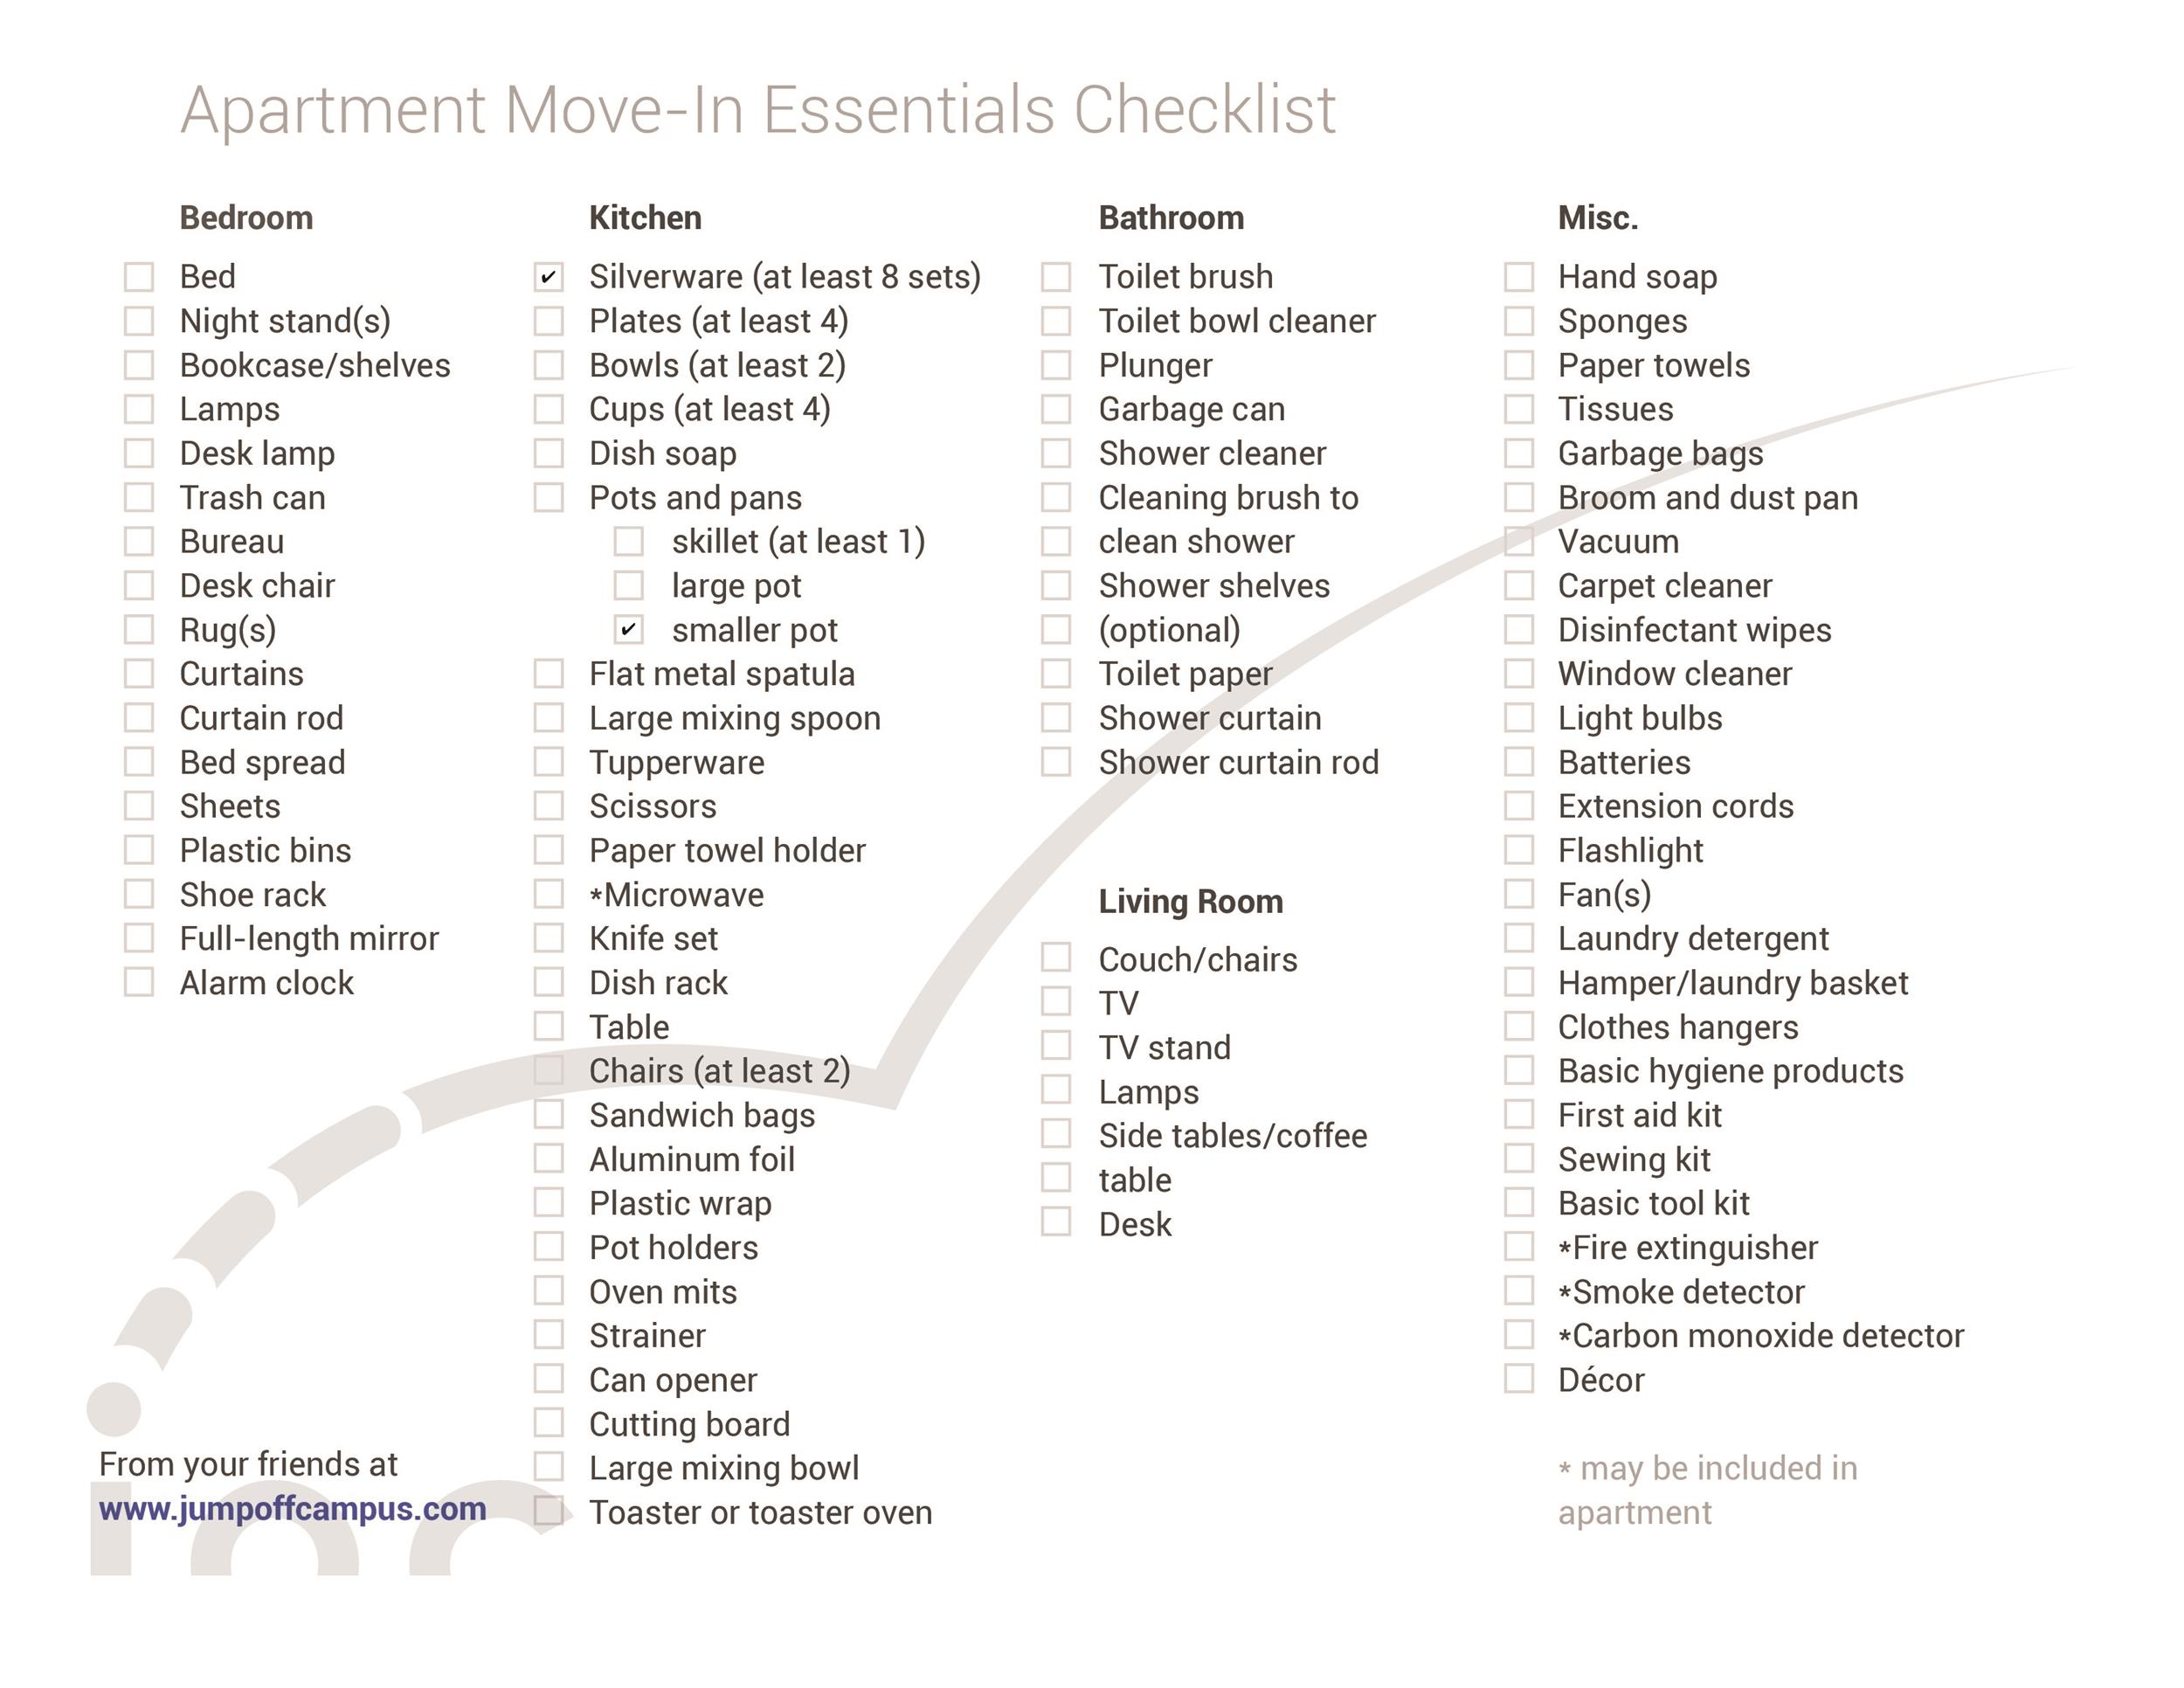 Free apartment checklist 02